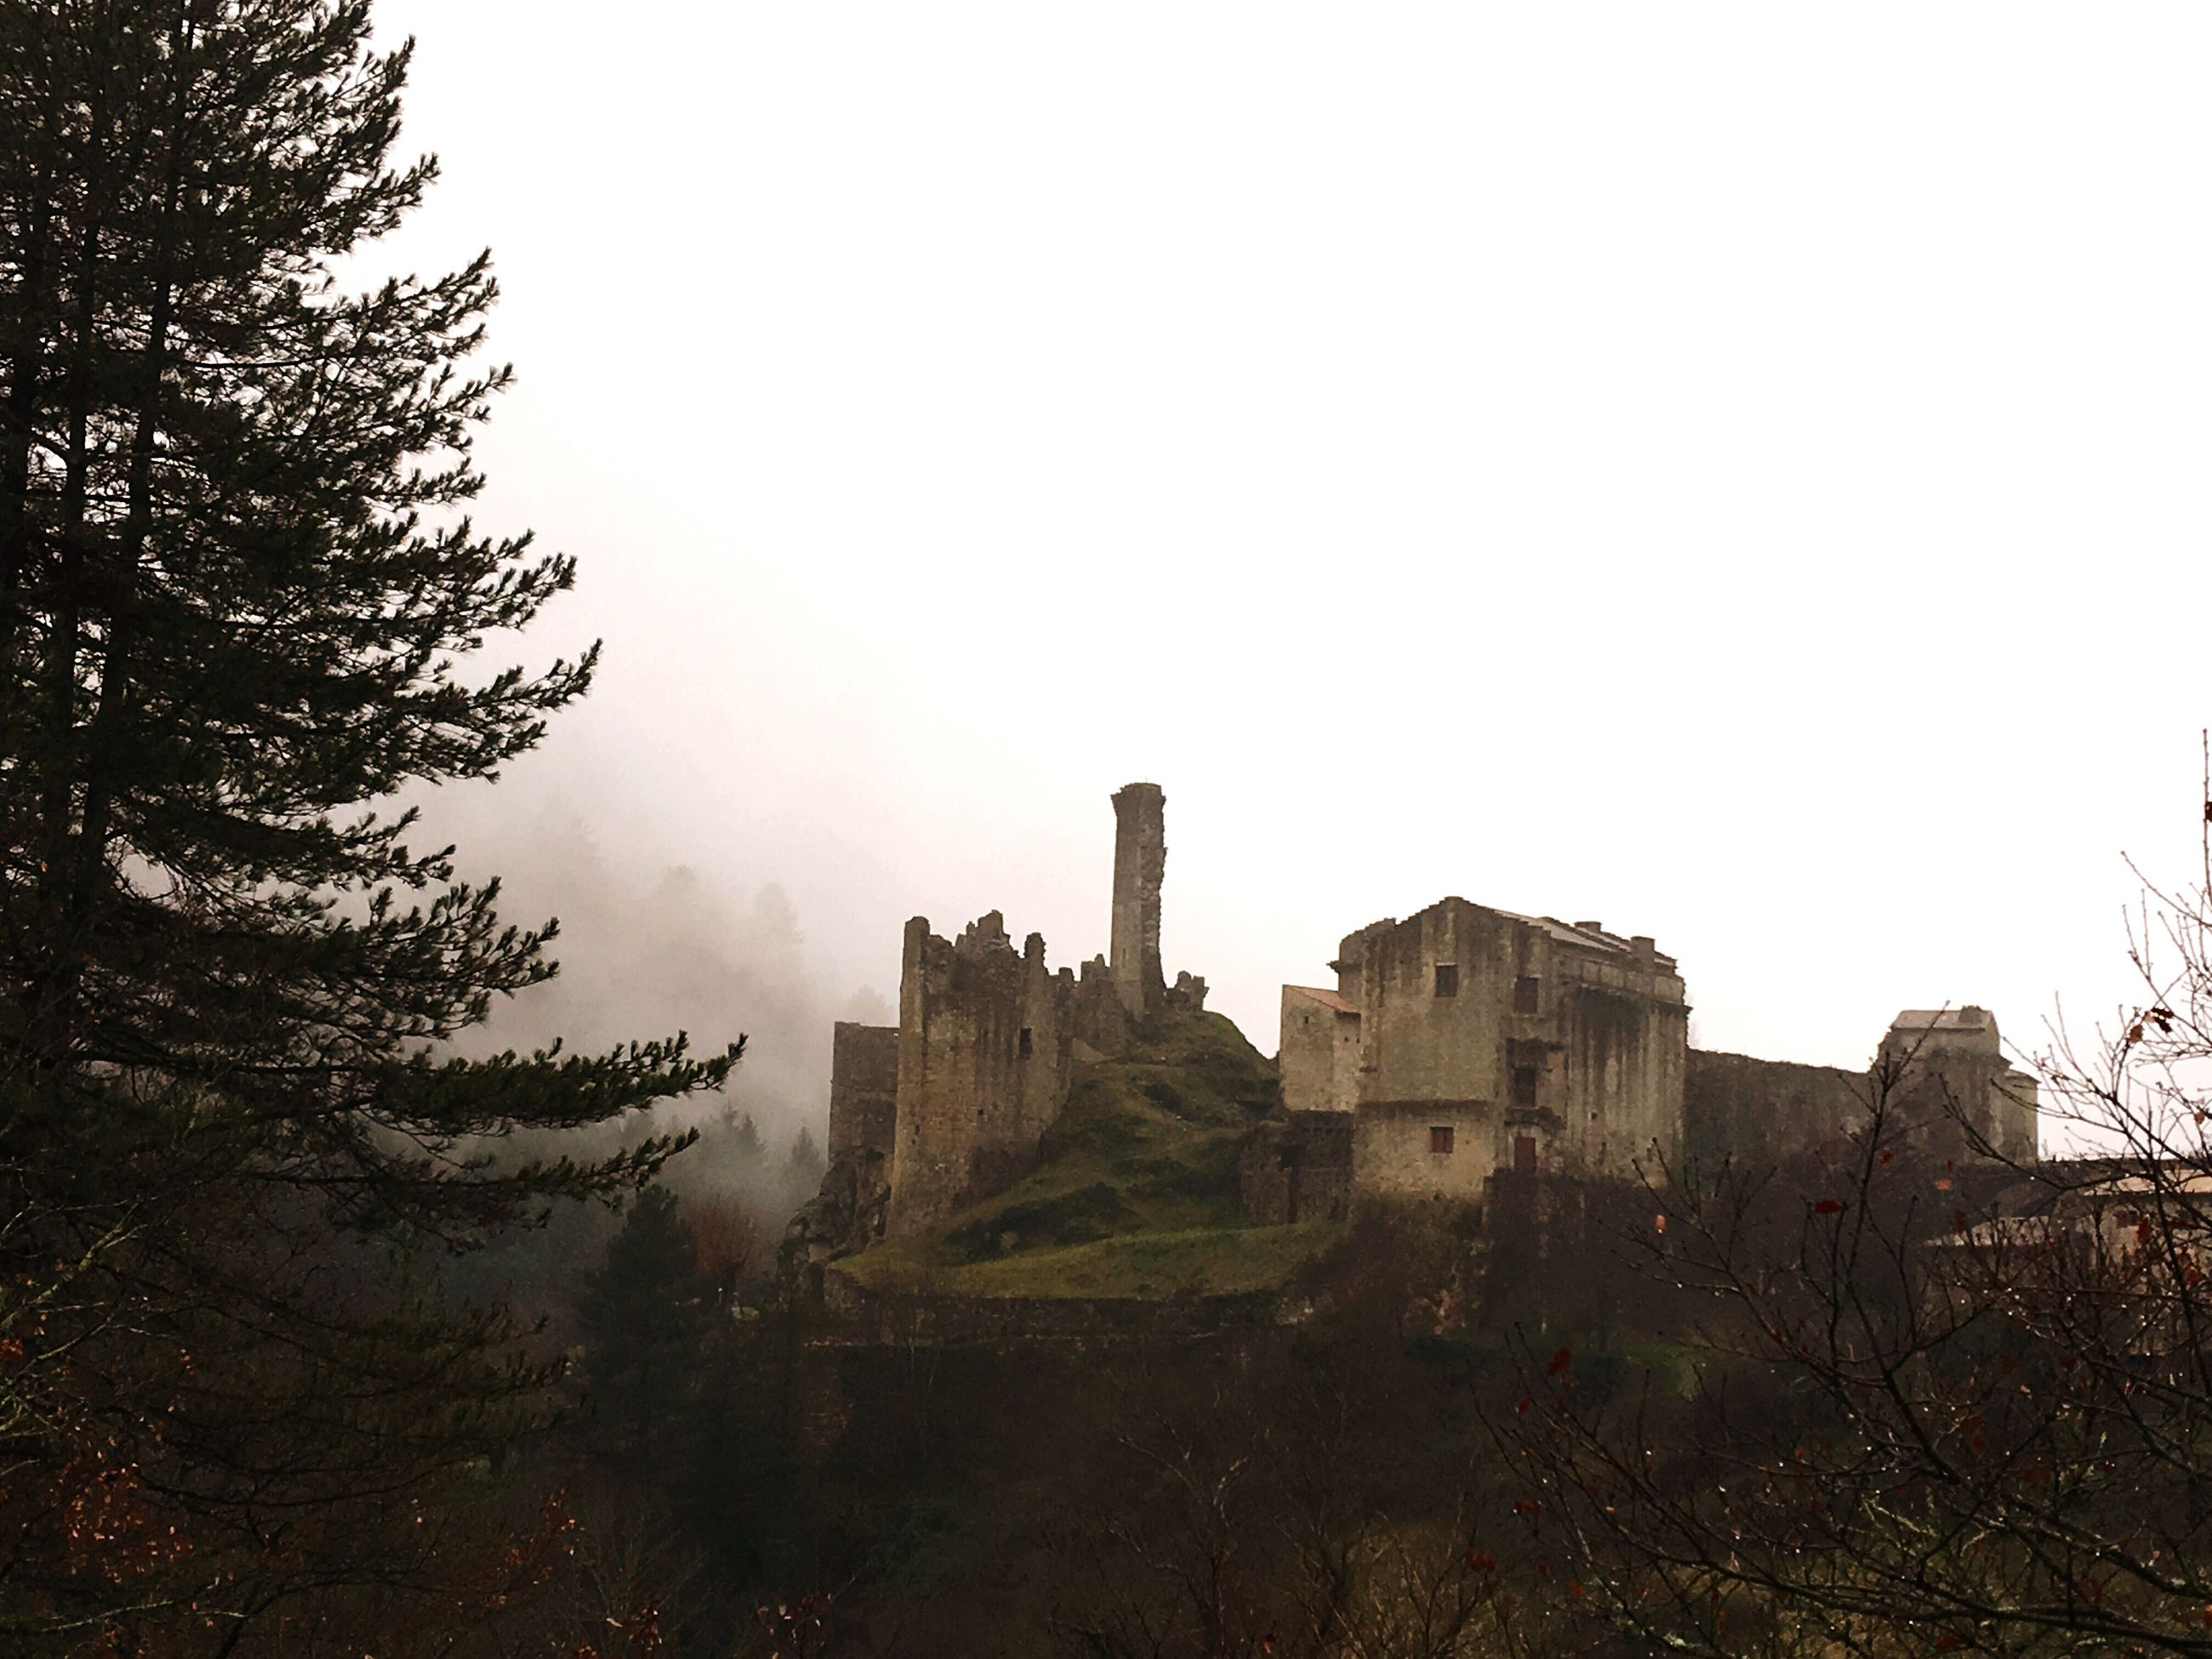 architecture, building exterior, built structure, clear sky, copy space, tree, history, sky, day, building, outdoors, no people, city, foggy, tower, travel destinations, tall - high, nature, old ruin